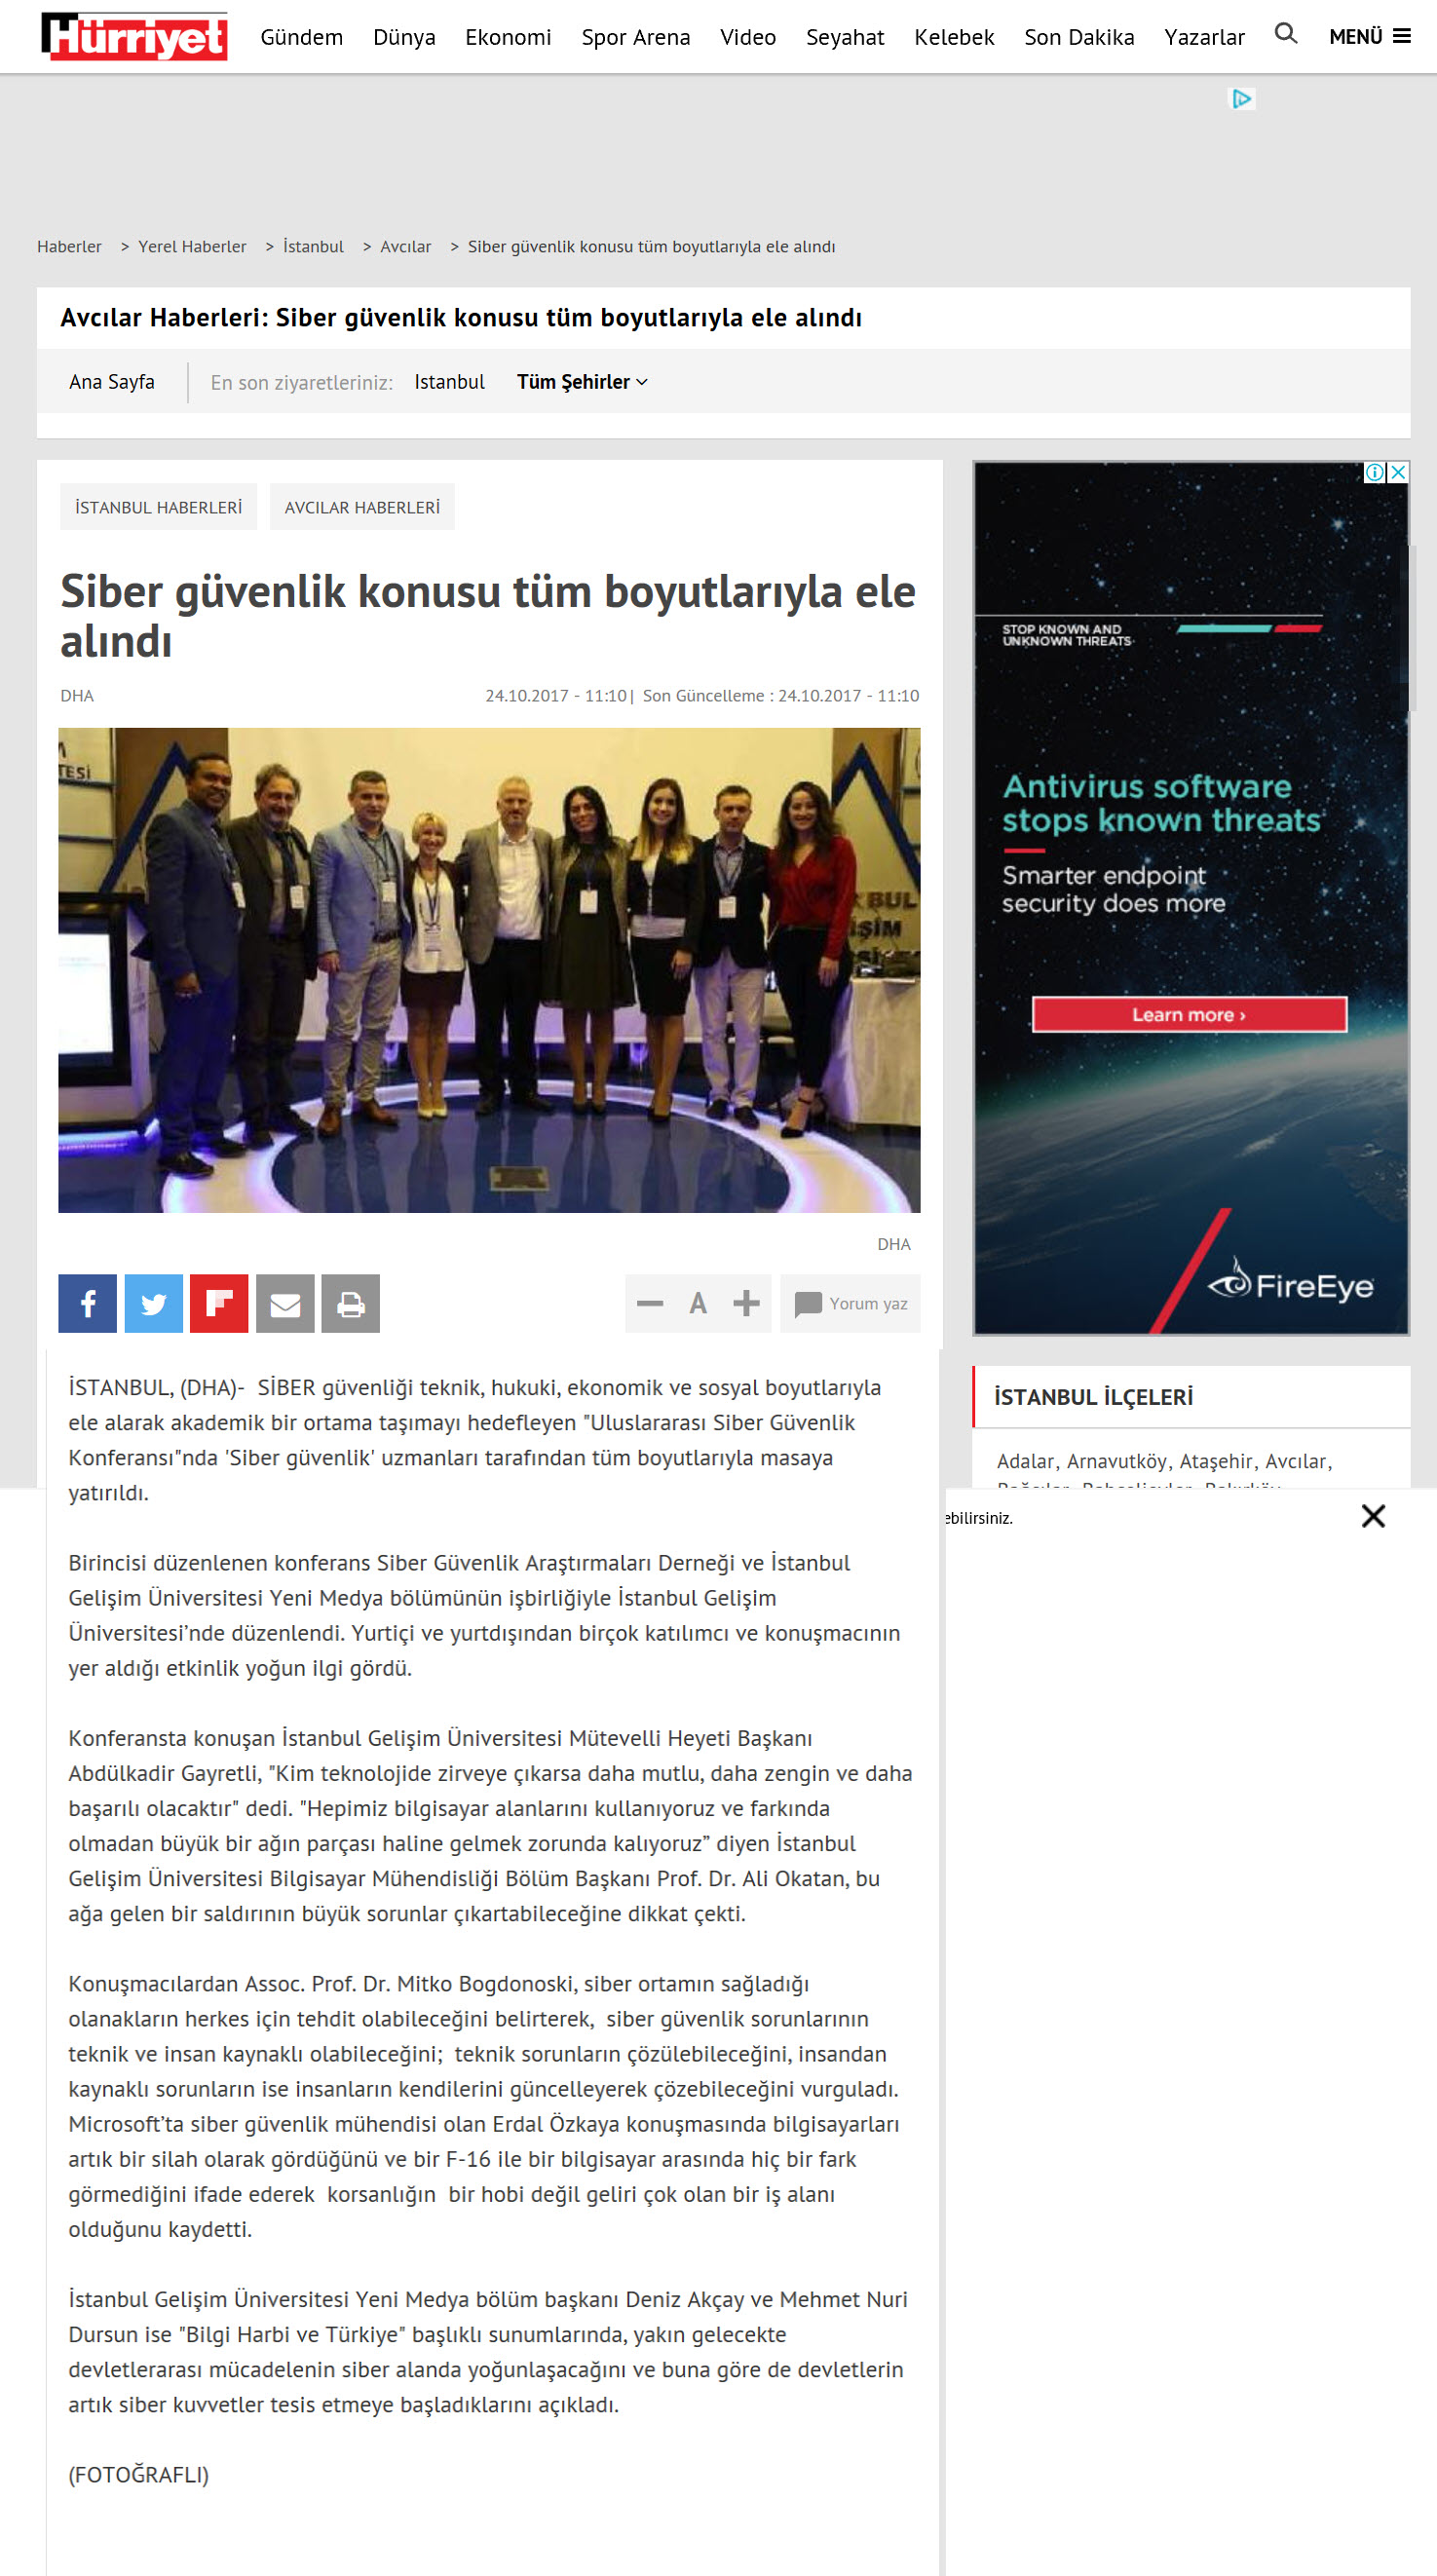 Experts covered Cybersecurity end to end Erdal